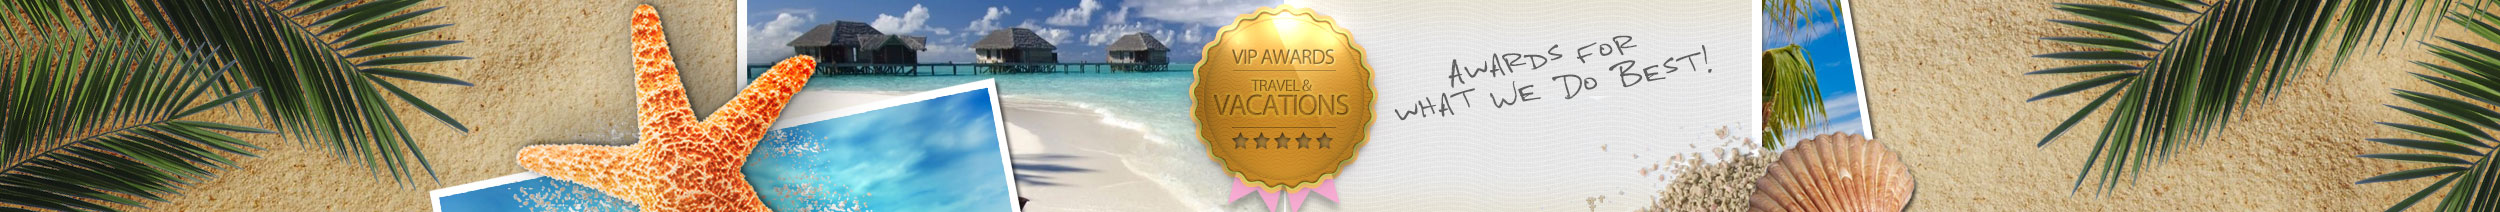 VIP Vacations Inc Wins at Star Awards 2018